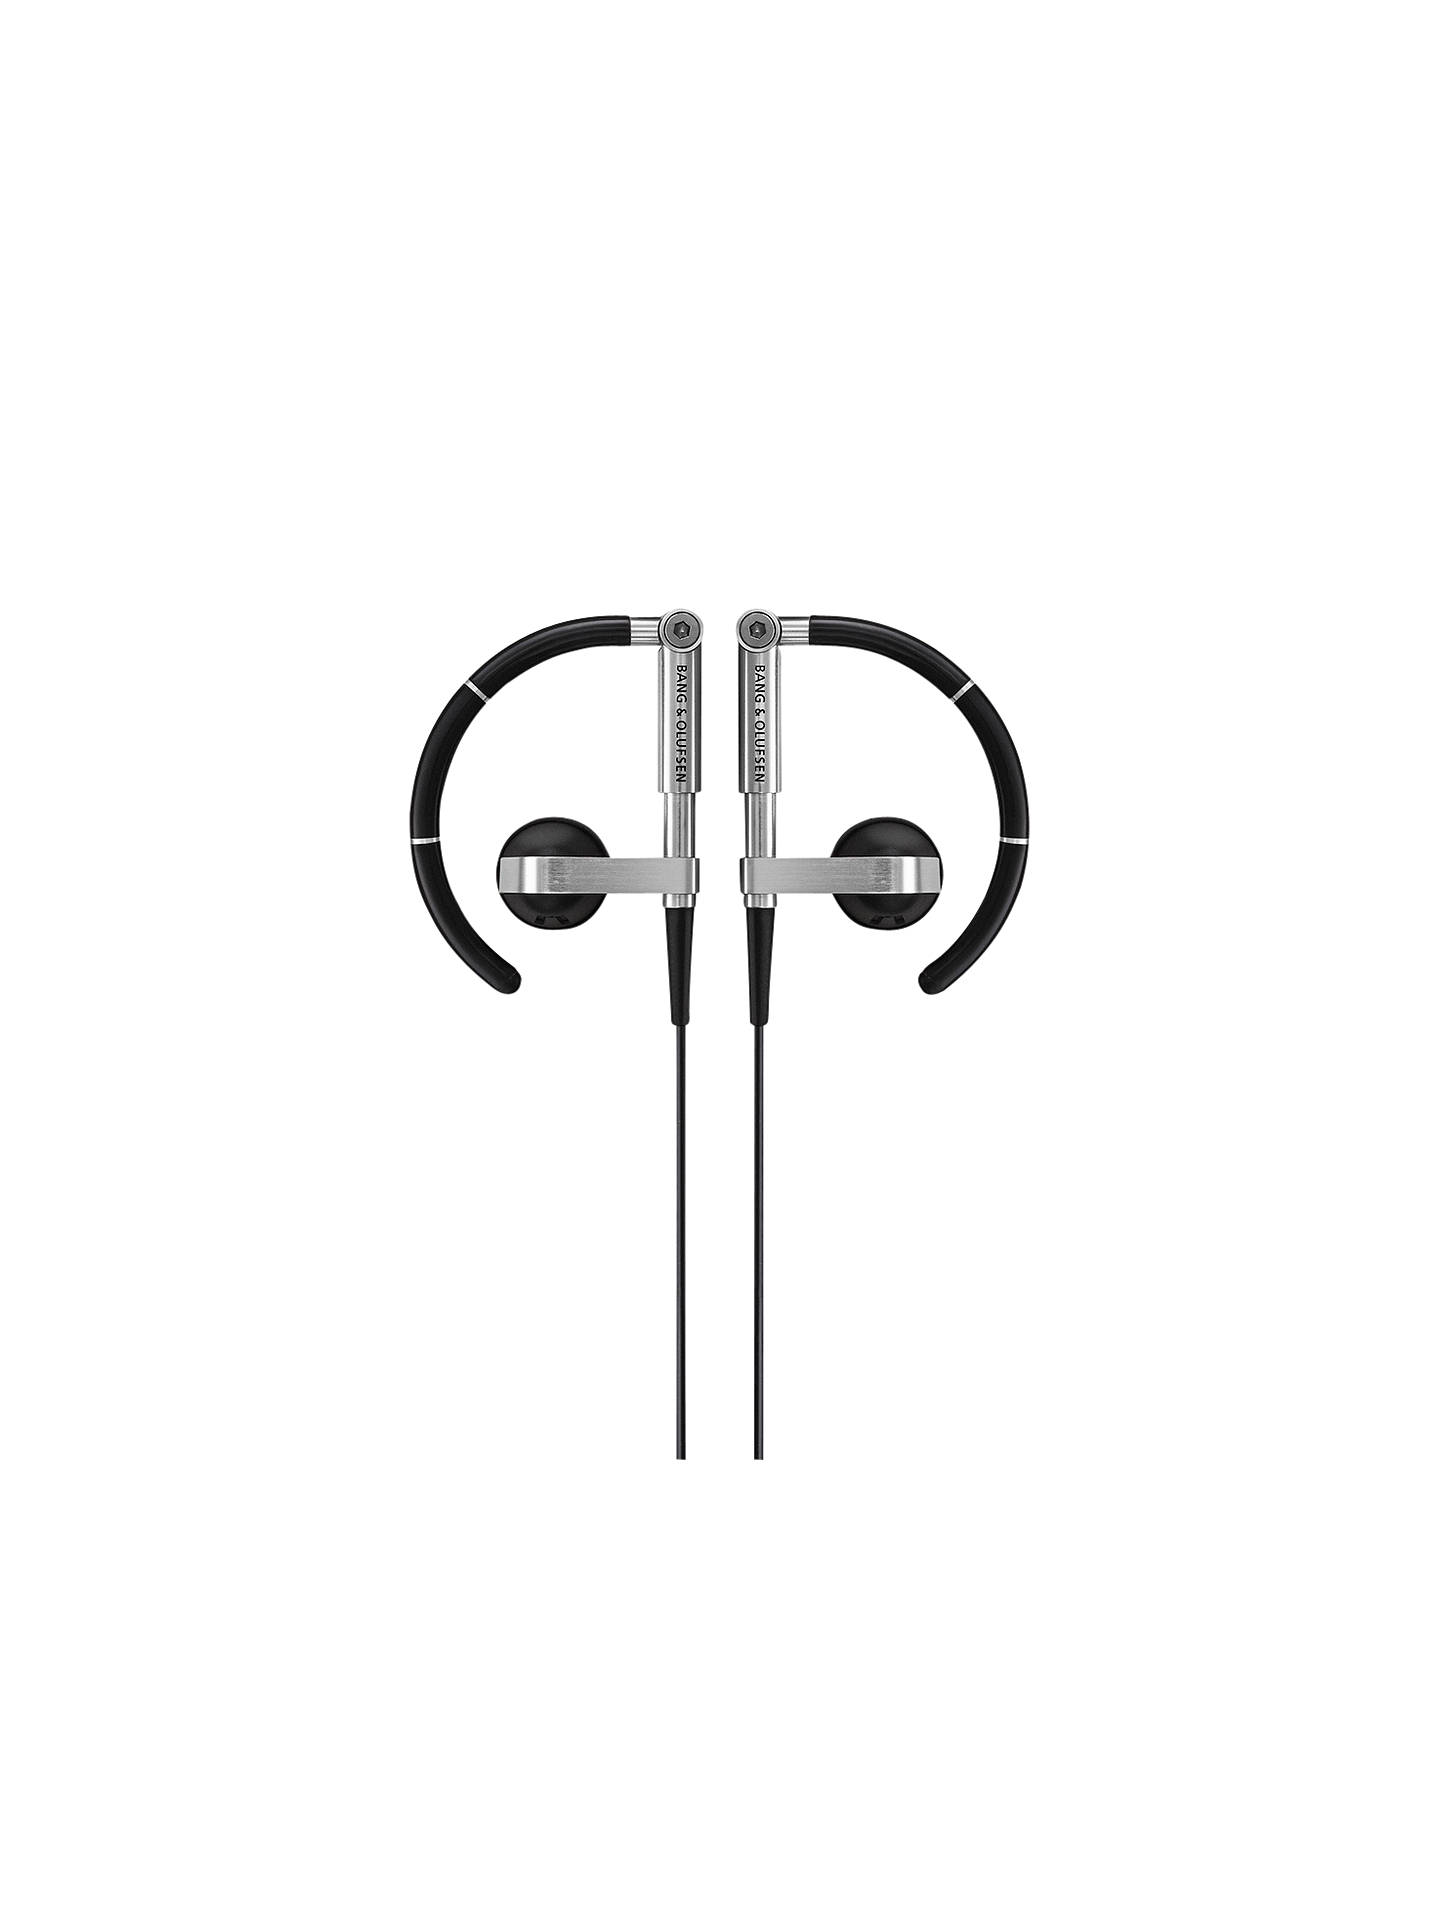 BuyB&O PLAY by Bang & Olufsen Beoplay EarSet 3i Around-Ear Headphones, Black Online at johnlewis.com